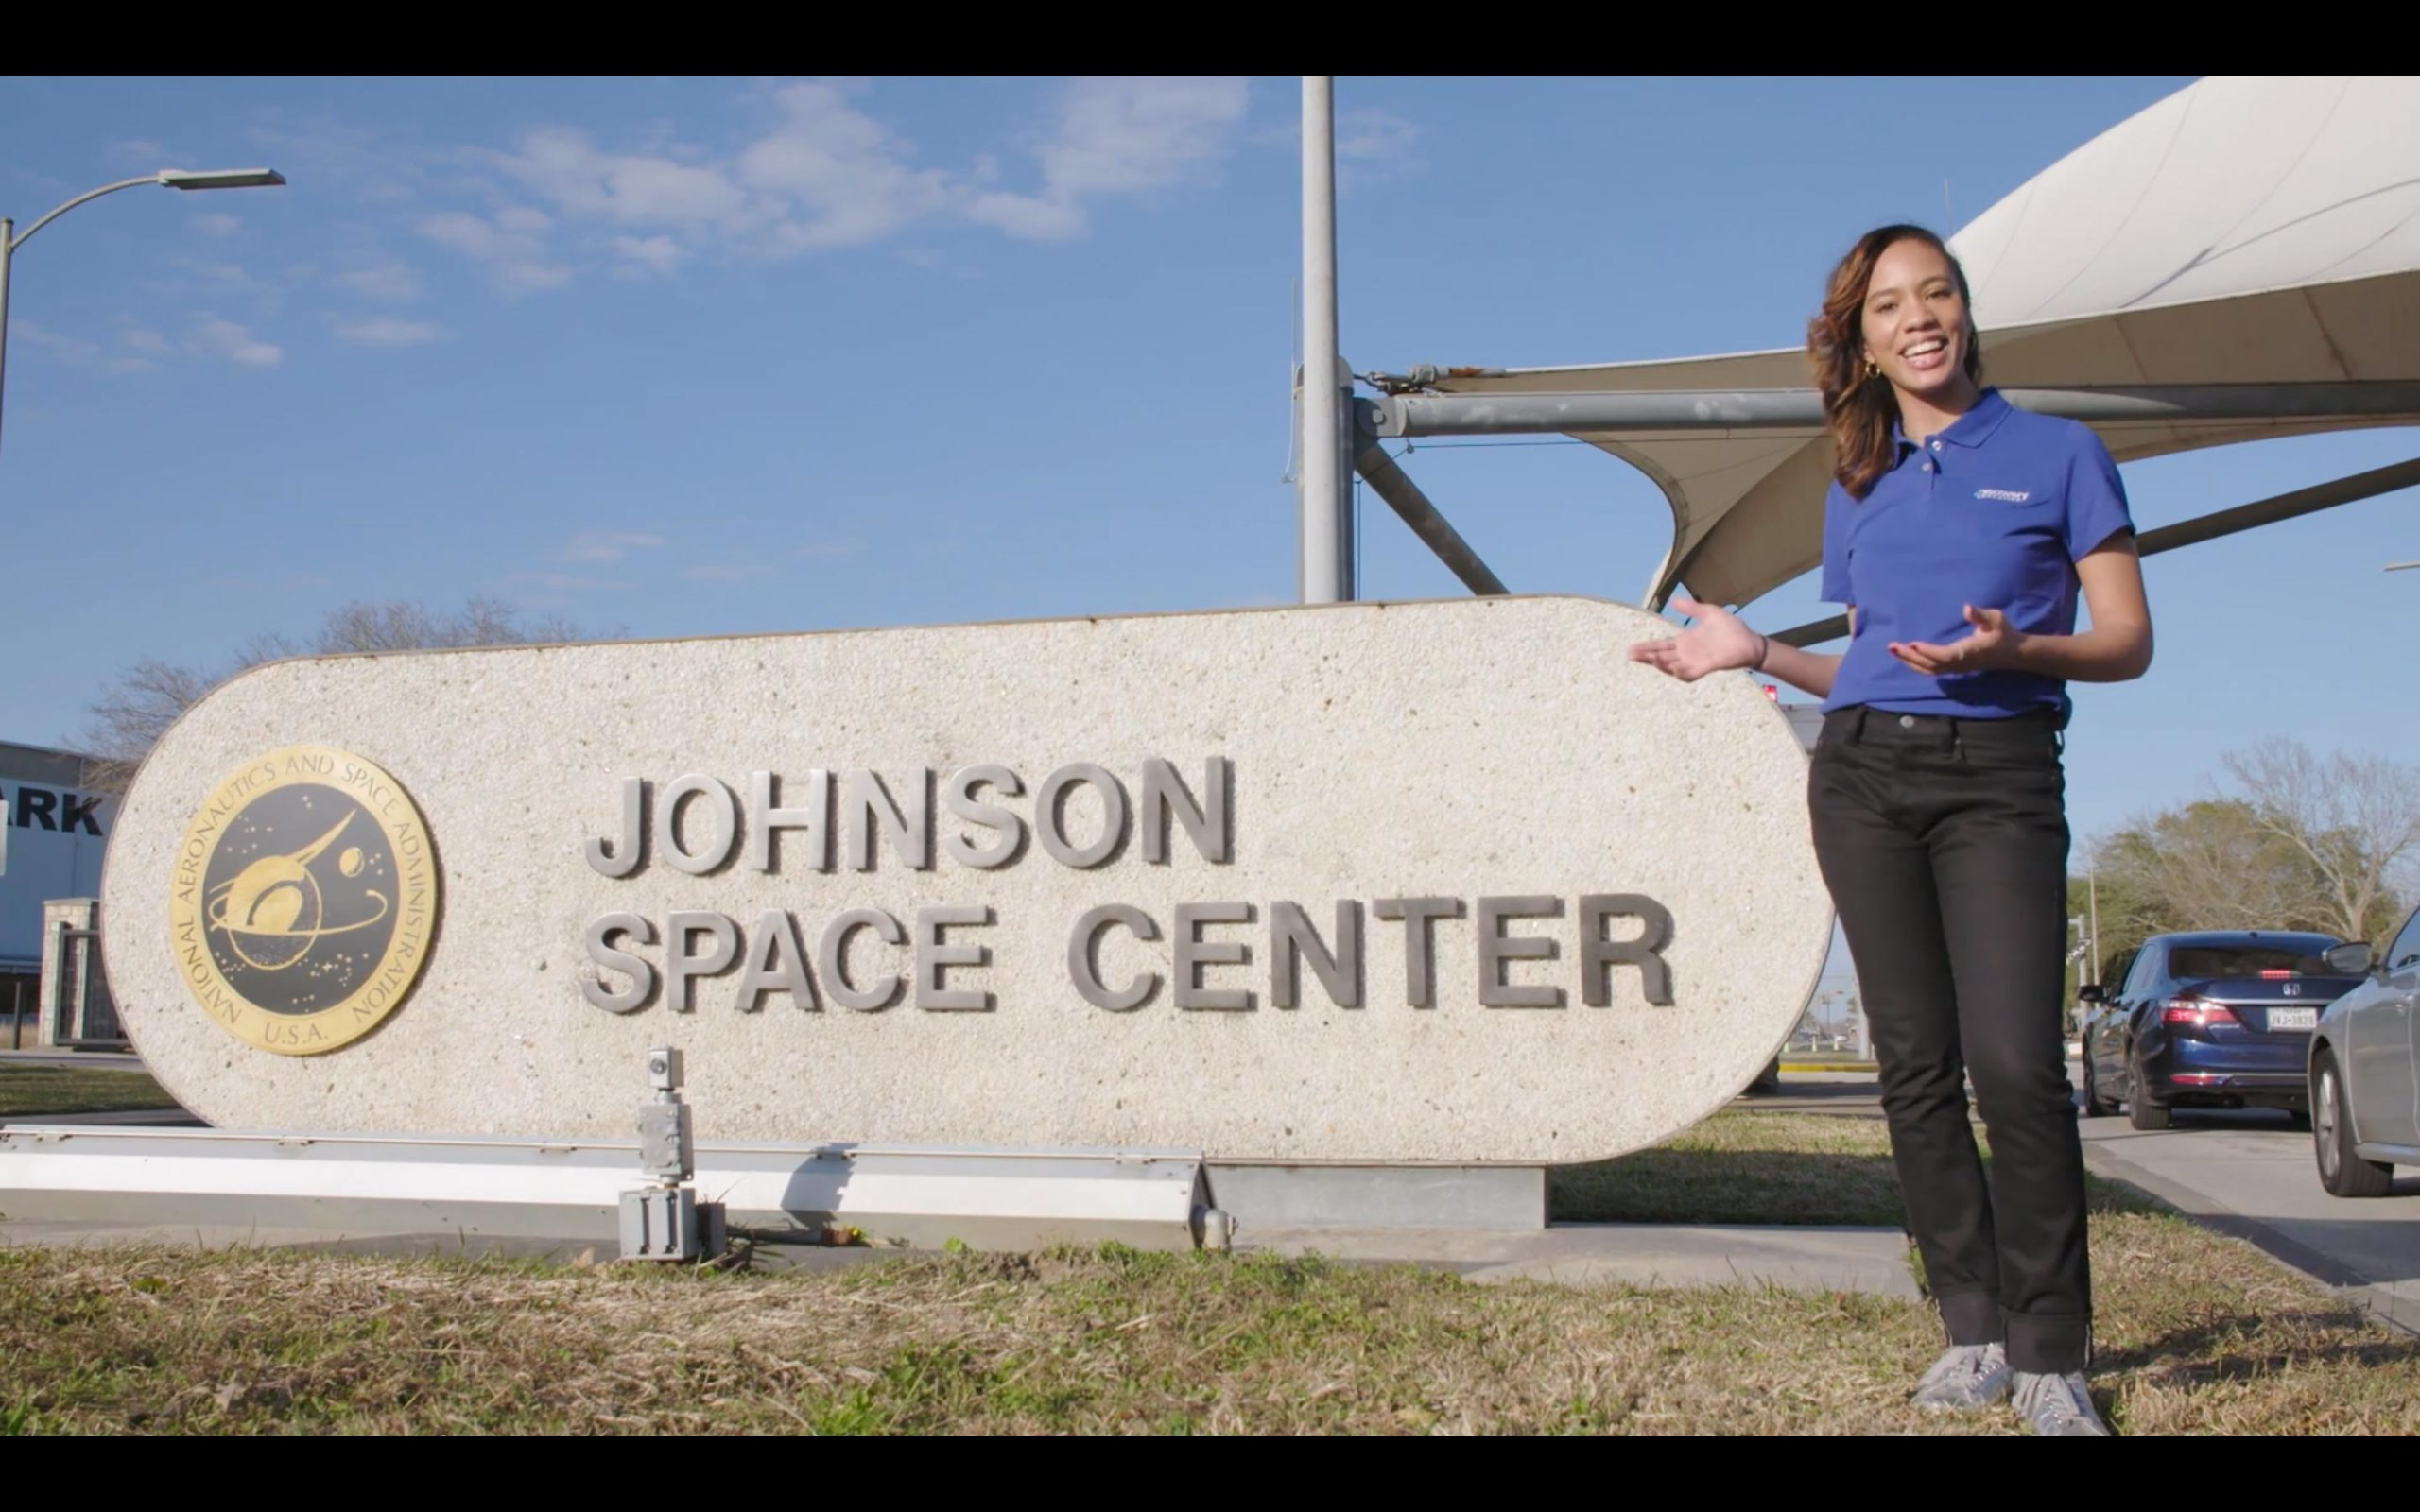 johnson space center field trip video